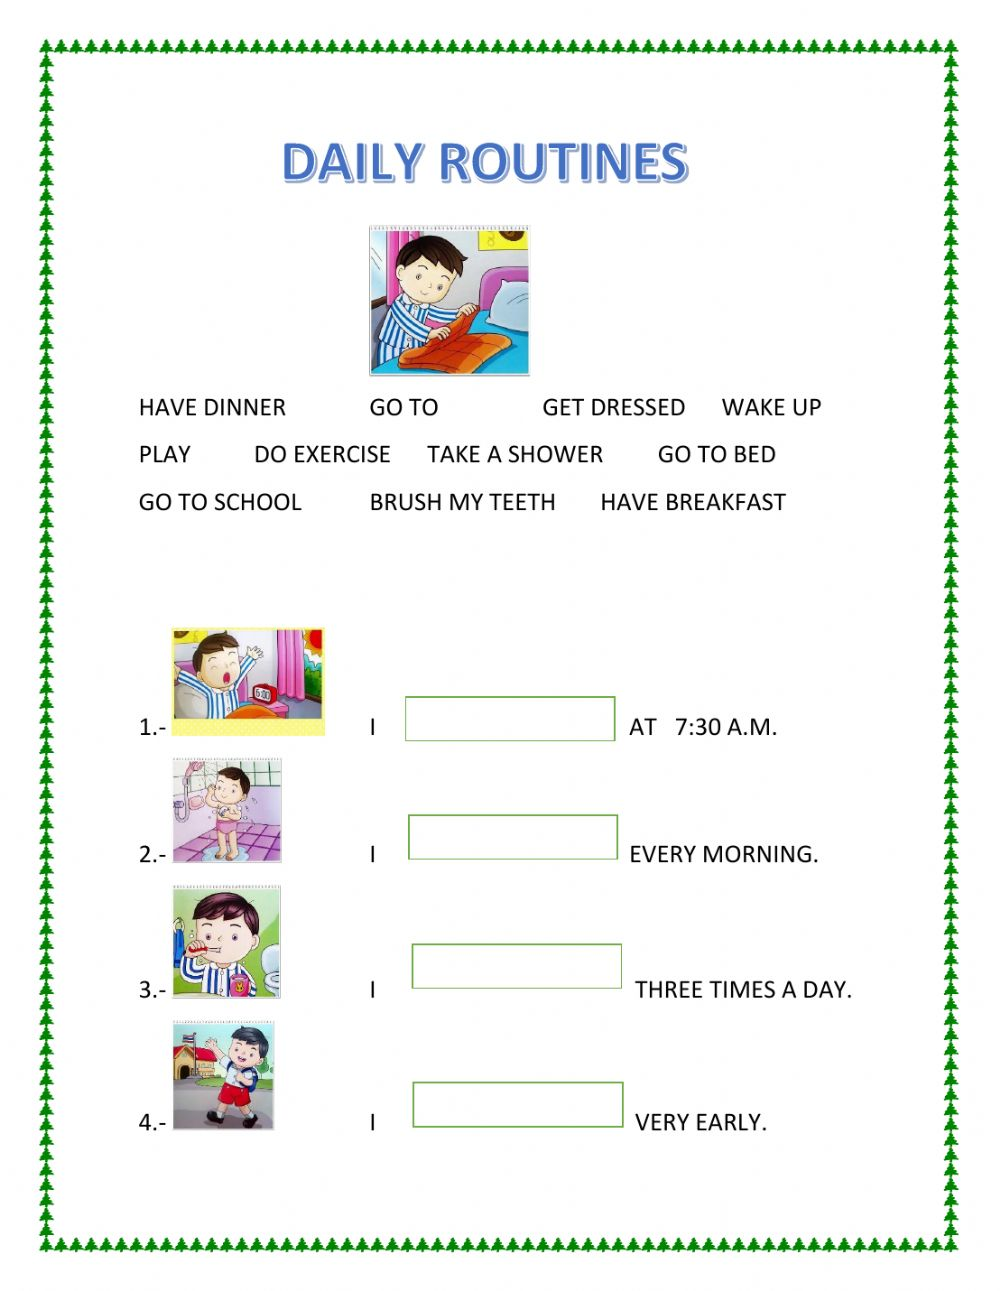 worksheet Routines Worksheets dialy routines interactive worksheet text